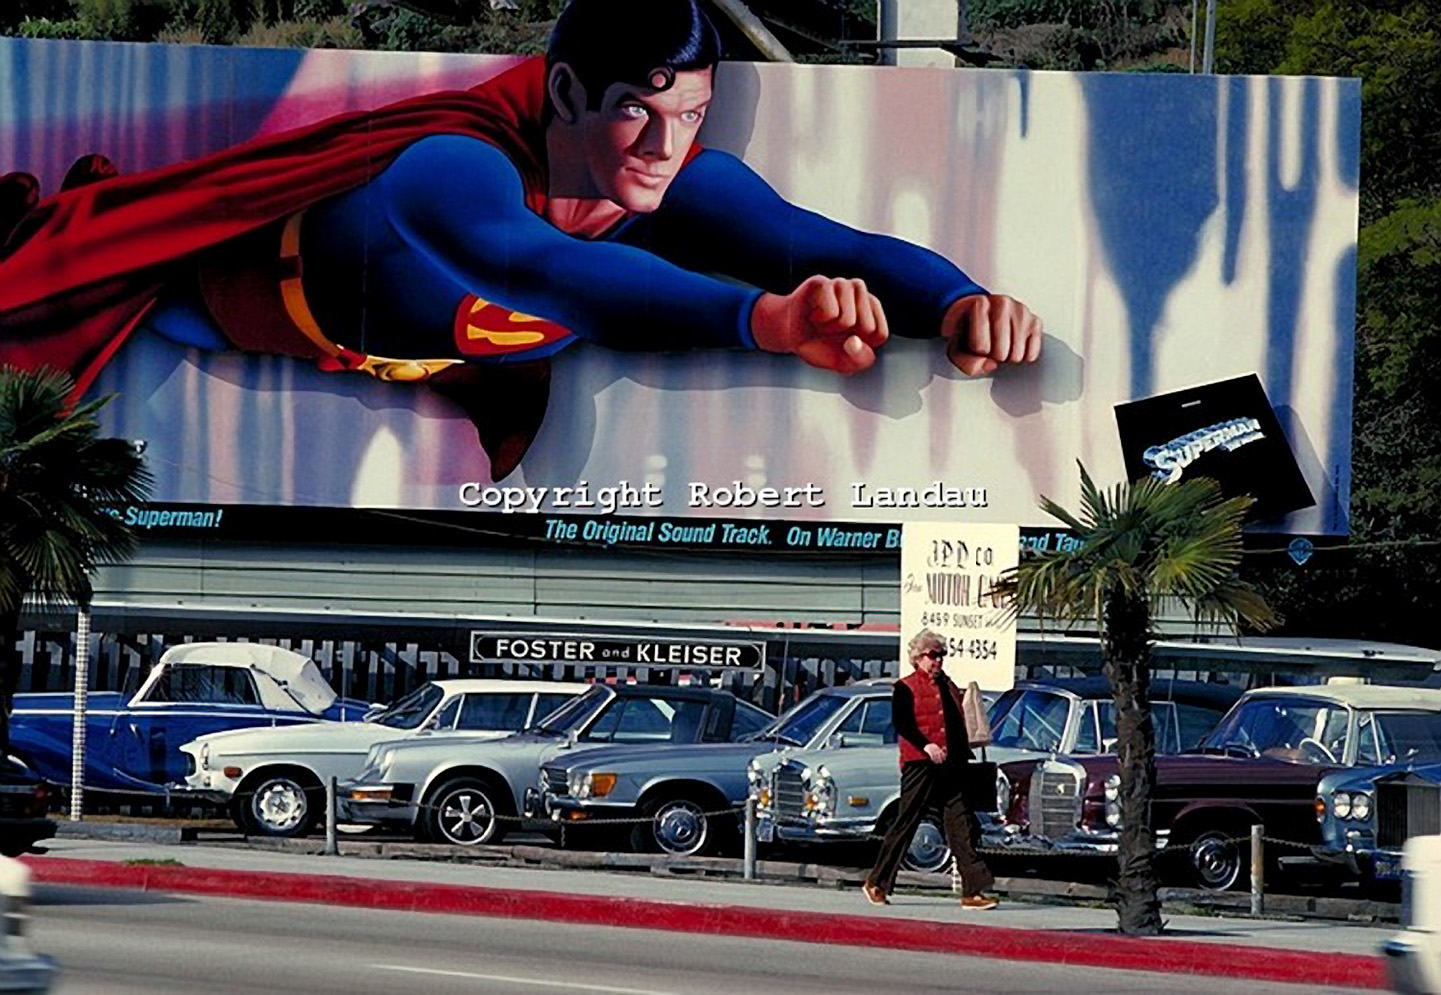 CW-Landau-Superman-billboard